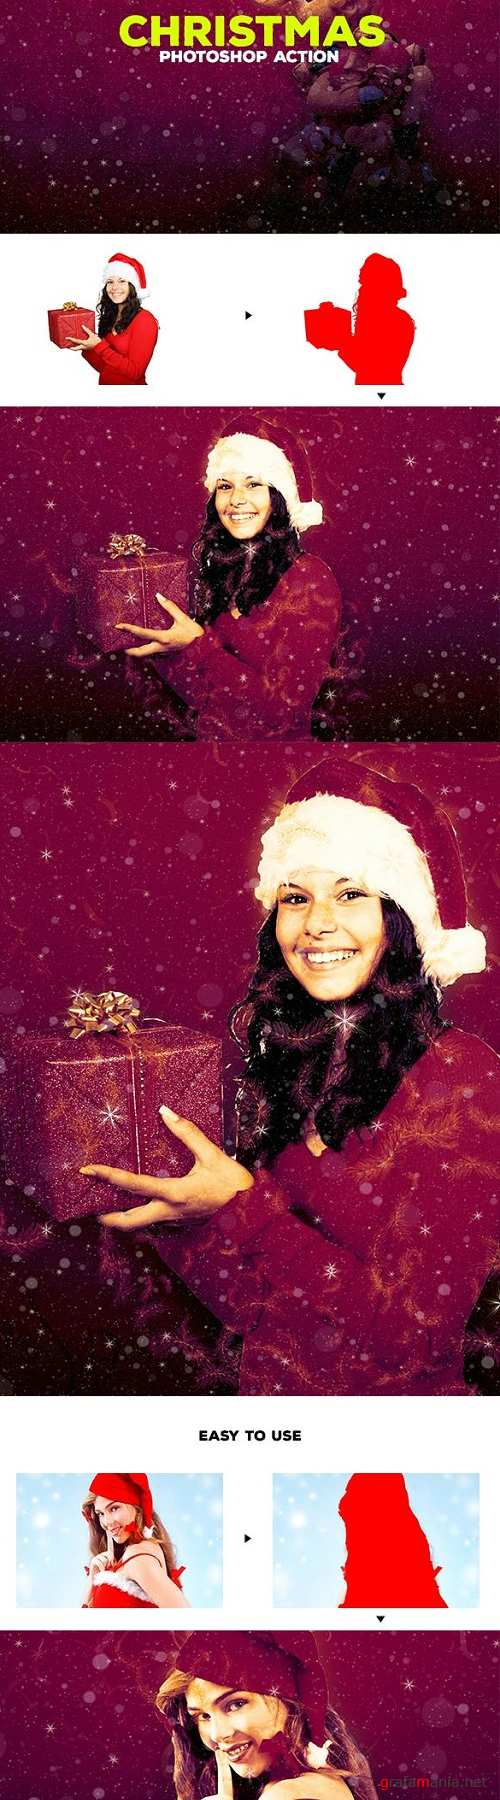 Christmas - Photoshop Action #57 - 19197380